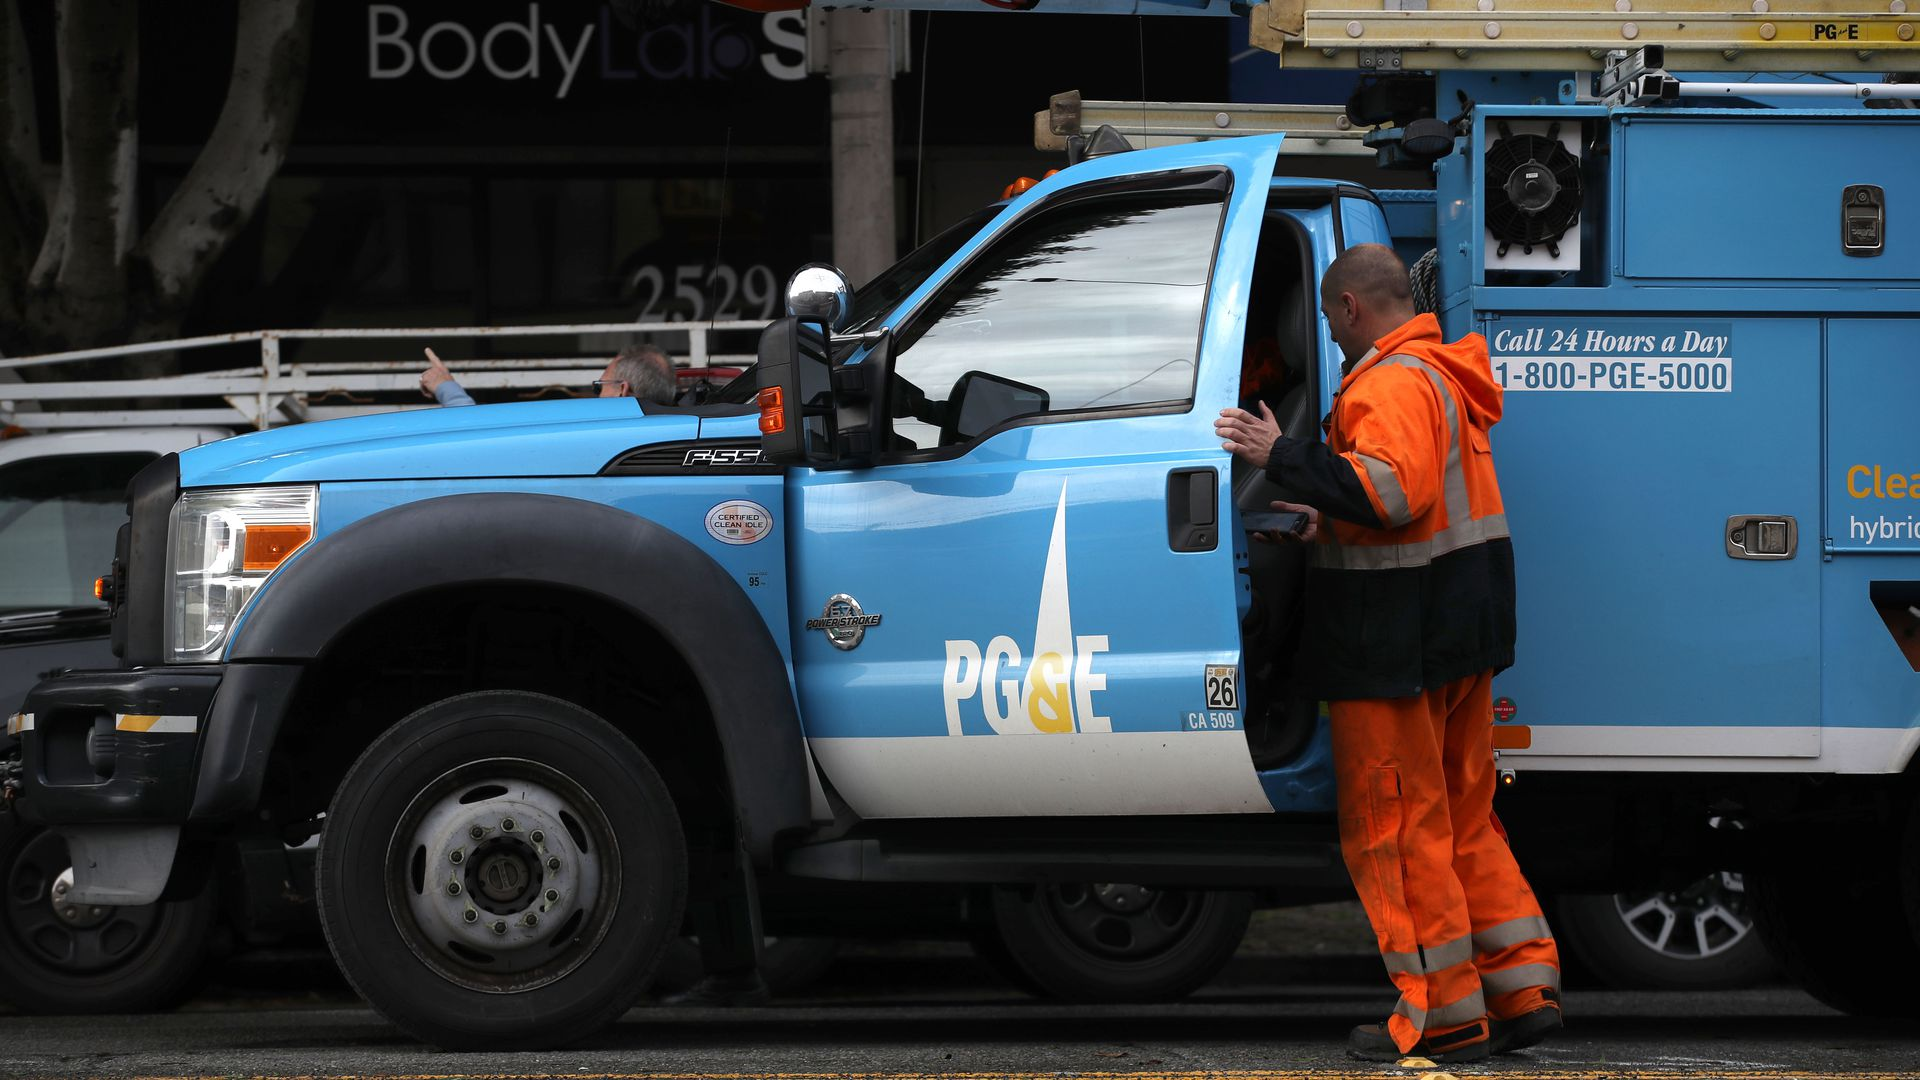 A worker getting into his PG&E truck